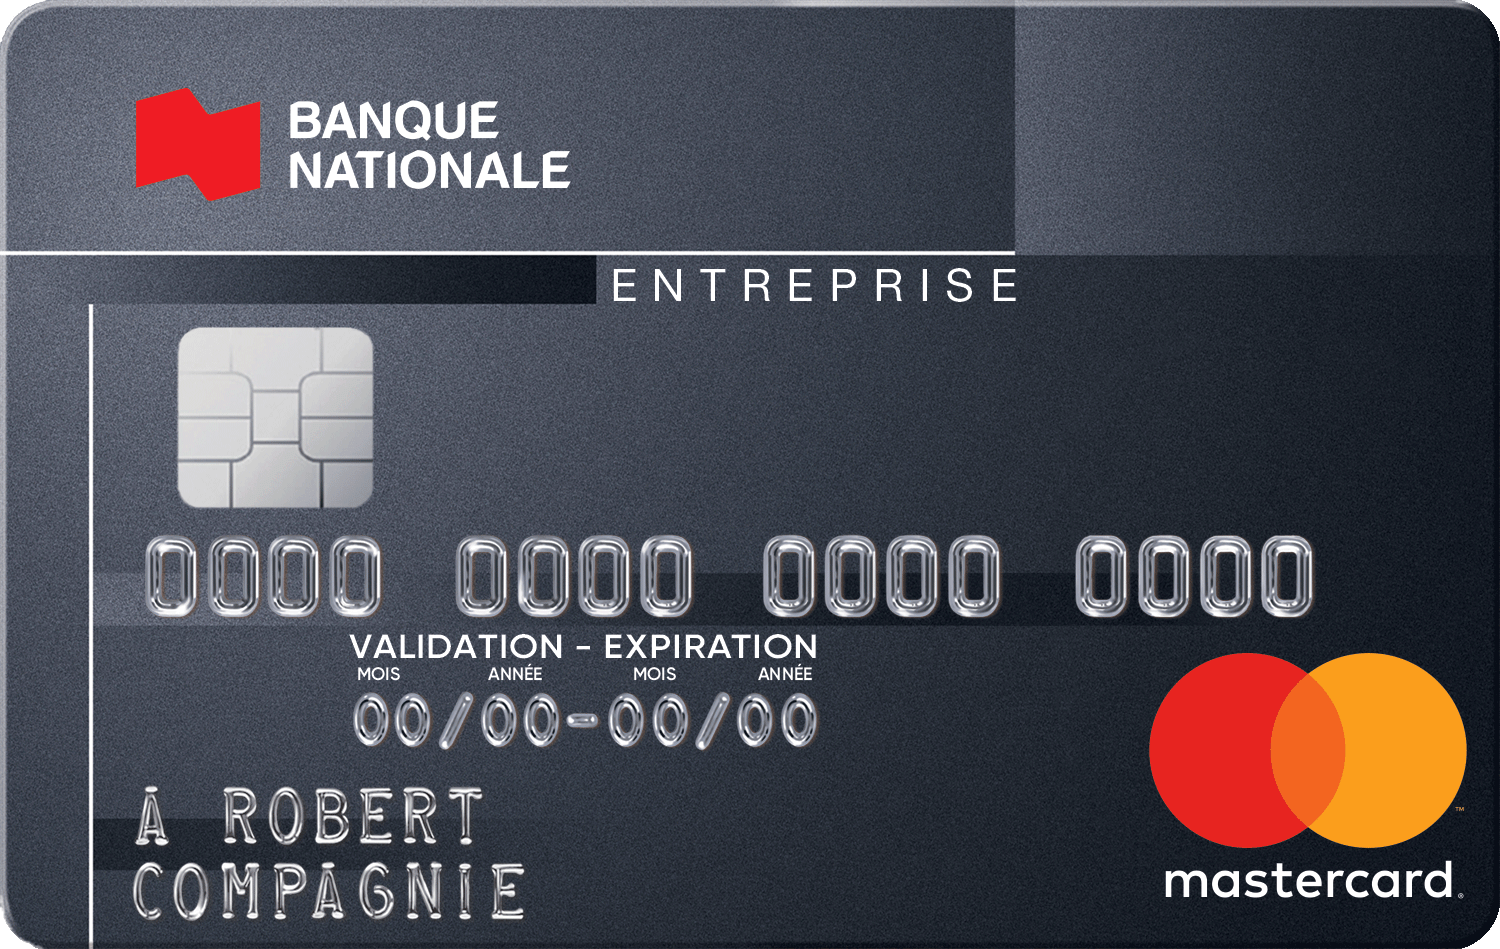 img-entreprise-carte-400x253.png